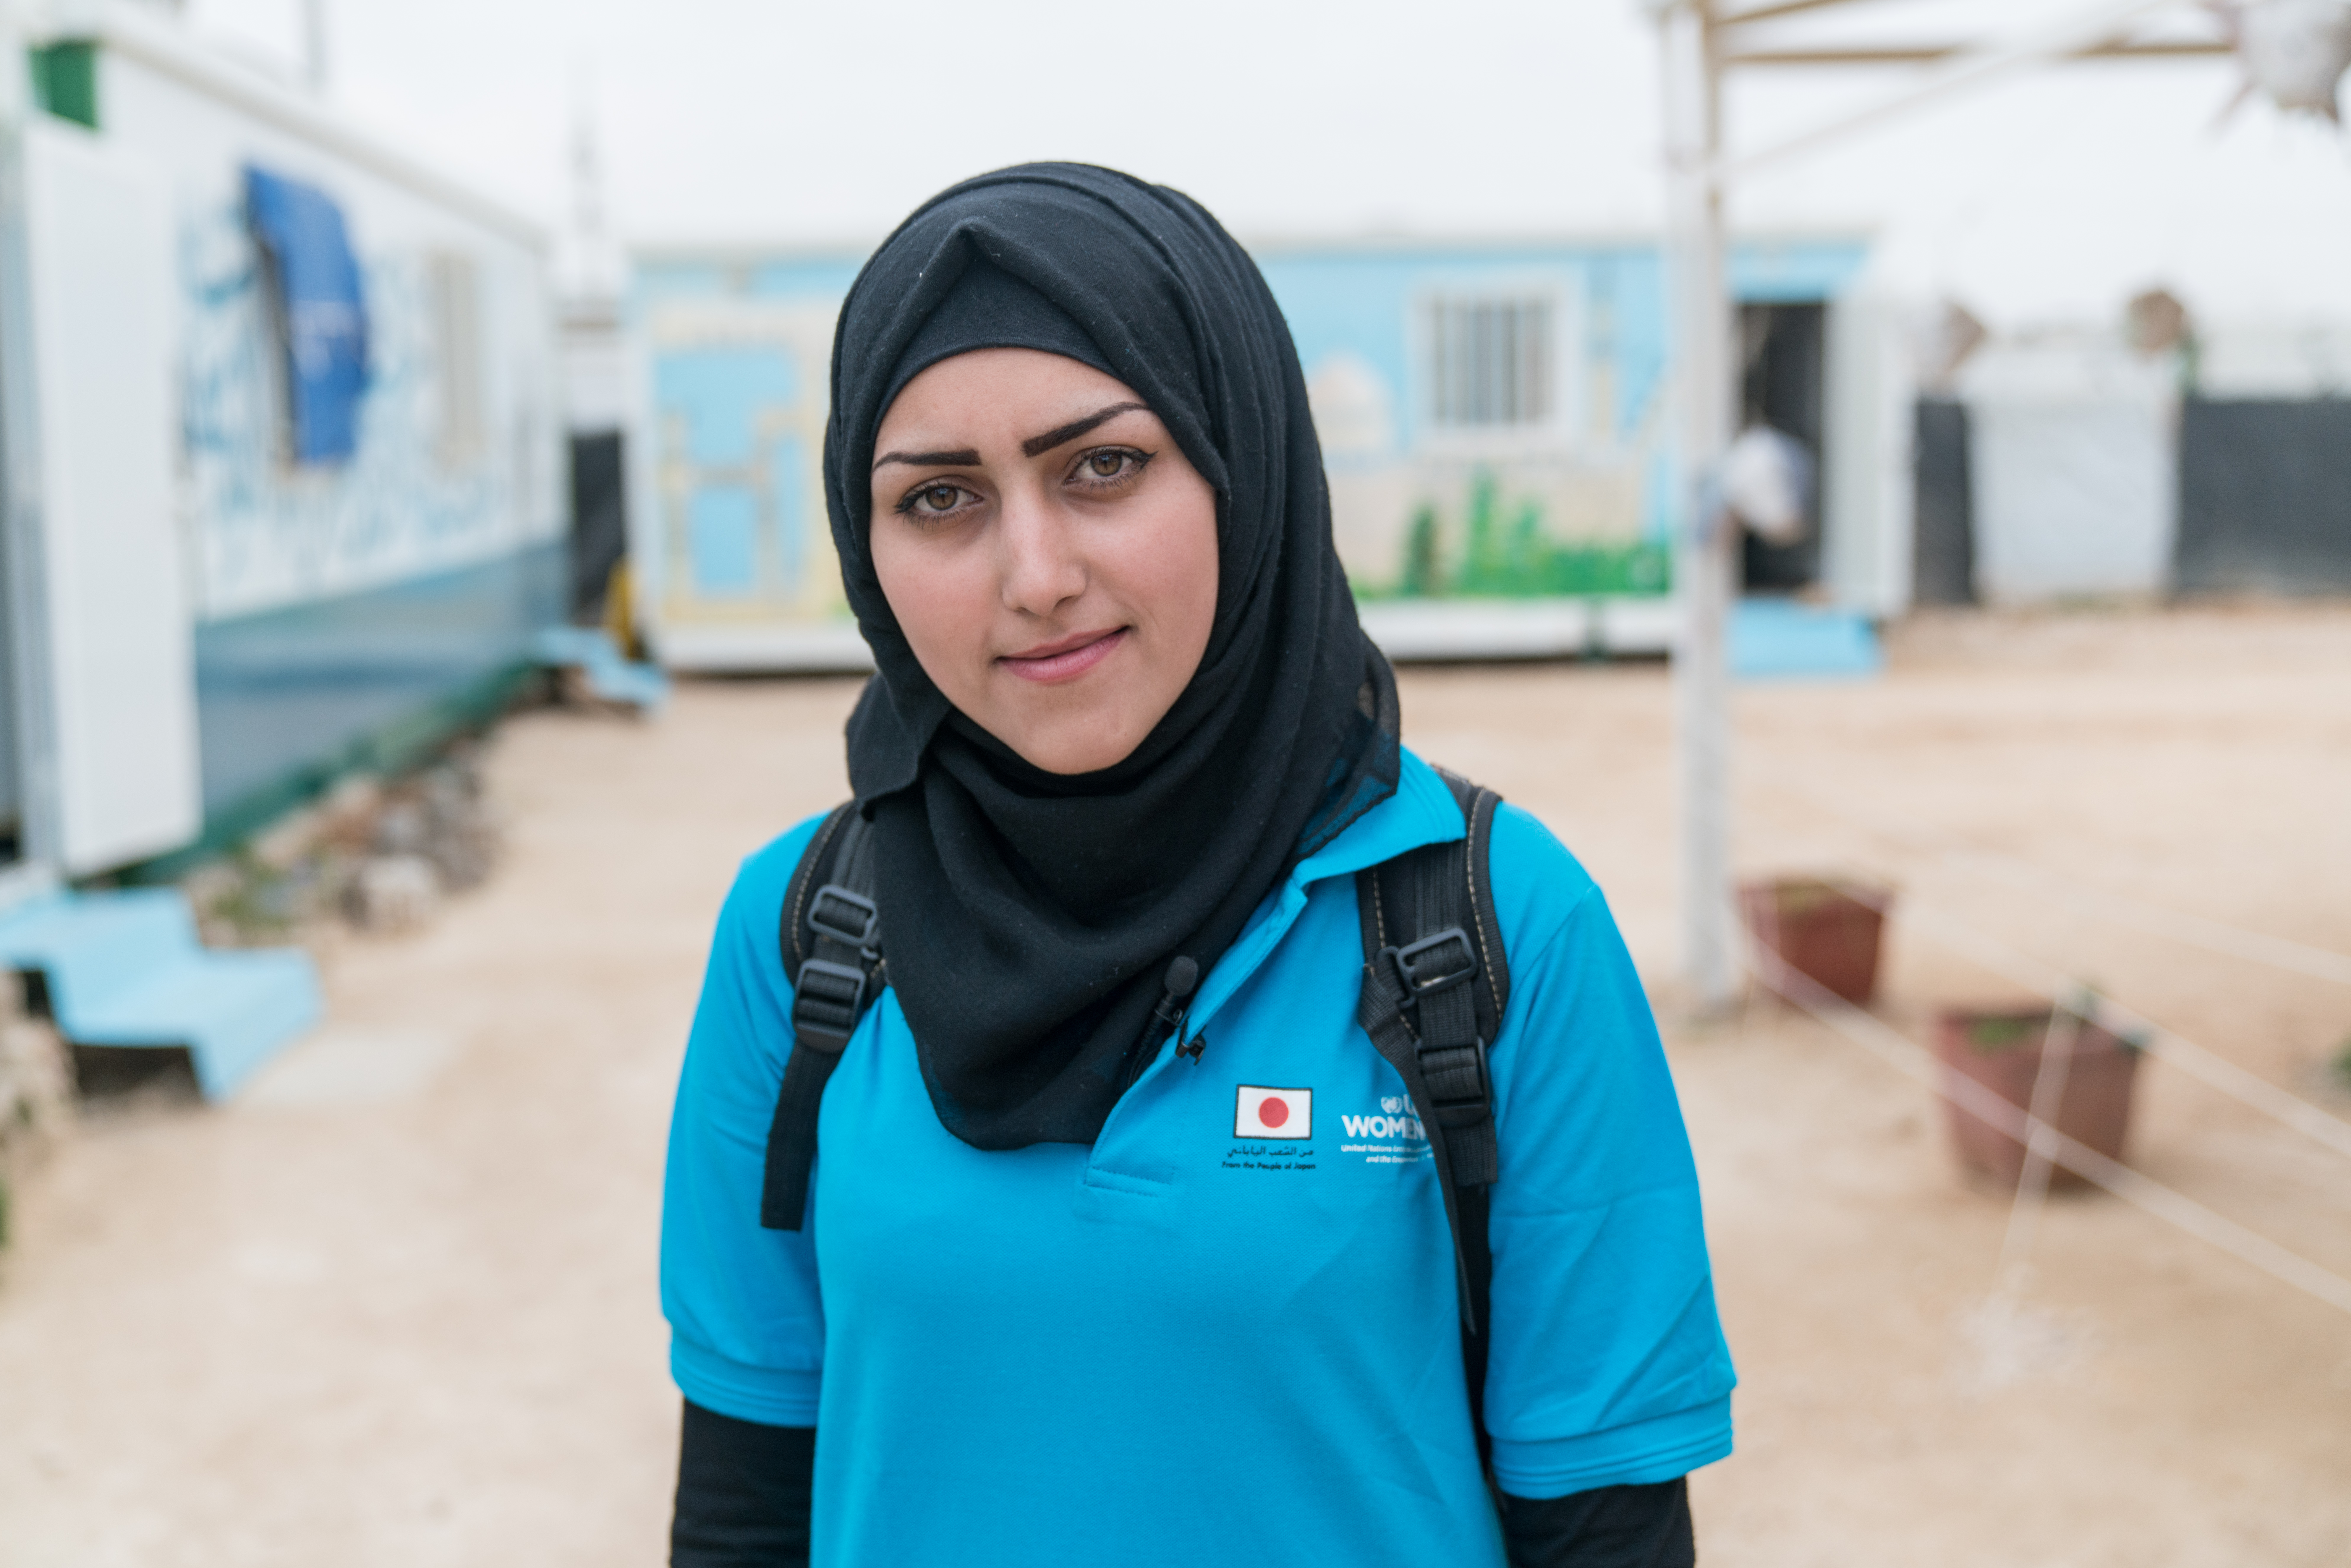 Areej is engaged in UN Women's cash for work programme as an assistant within the Oasis. The Oases are Safe Spaces which offer comprehensive gender focused support to refugees through protection services, employment opportunities, community engagement and decision-making. Photo credits: UN Women Jordan/Christopher Herwig